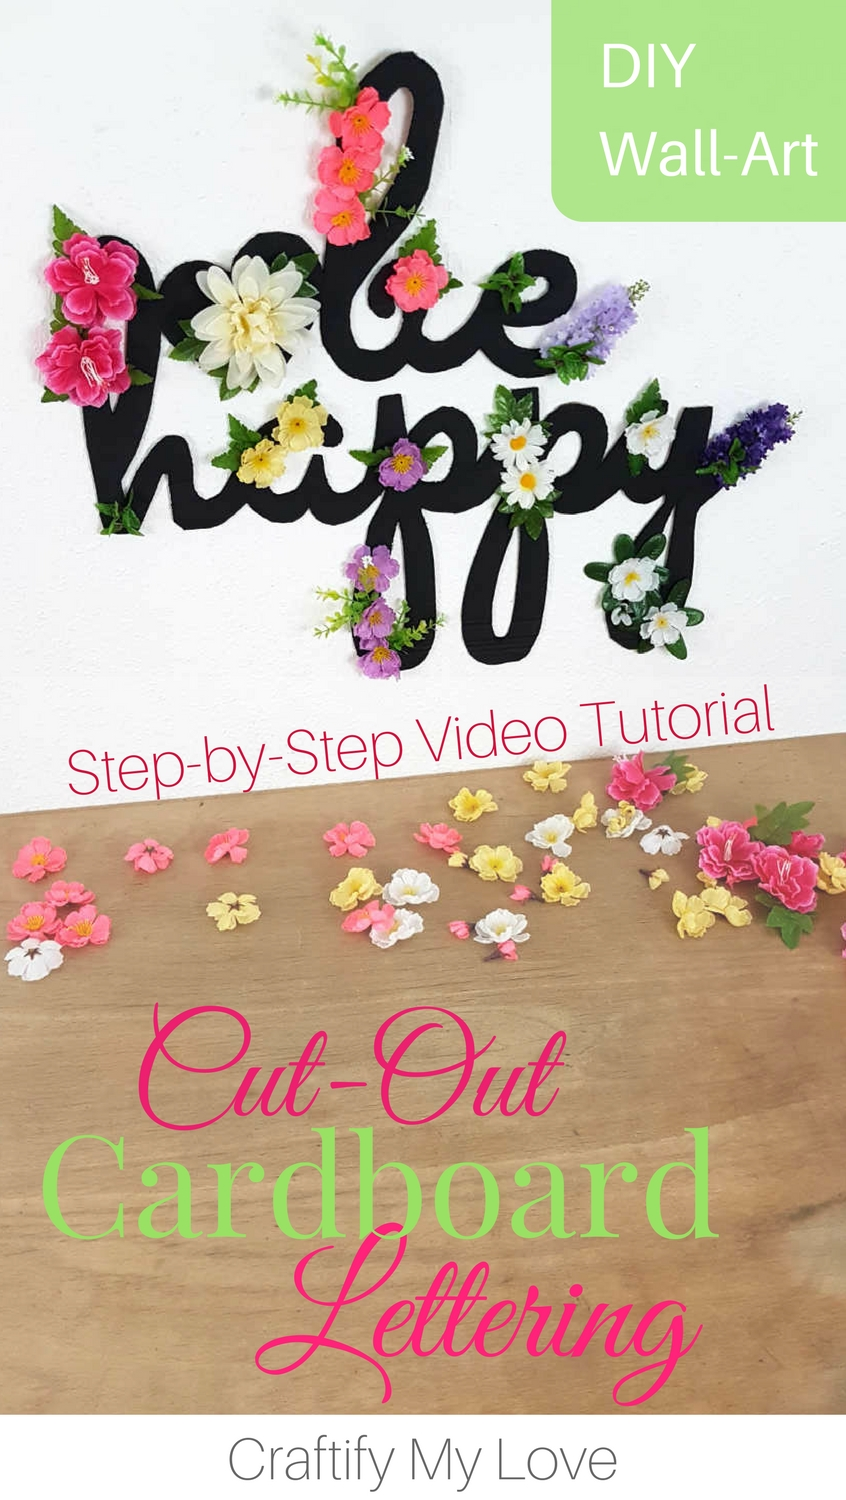 Ready for SPRING or a little MOTIVATION? Learn how to make this recycled cardboard cut-out sign today! Click for Step-by-Step Instructions including Video Tutorial | #behappy #motivationalquote #cardboard #recycling #upcycling #DIY #craftsproject #chalkpaint #silkflowers #dollartree